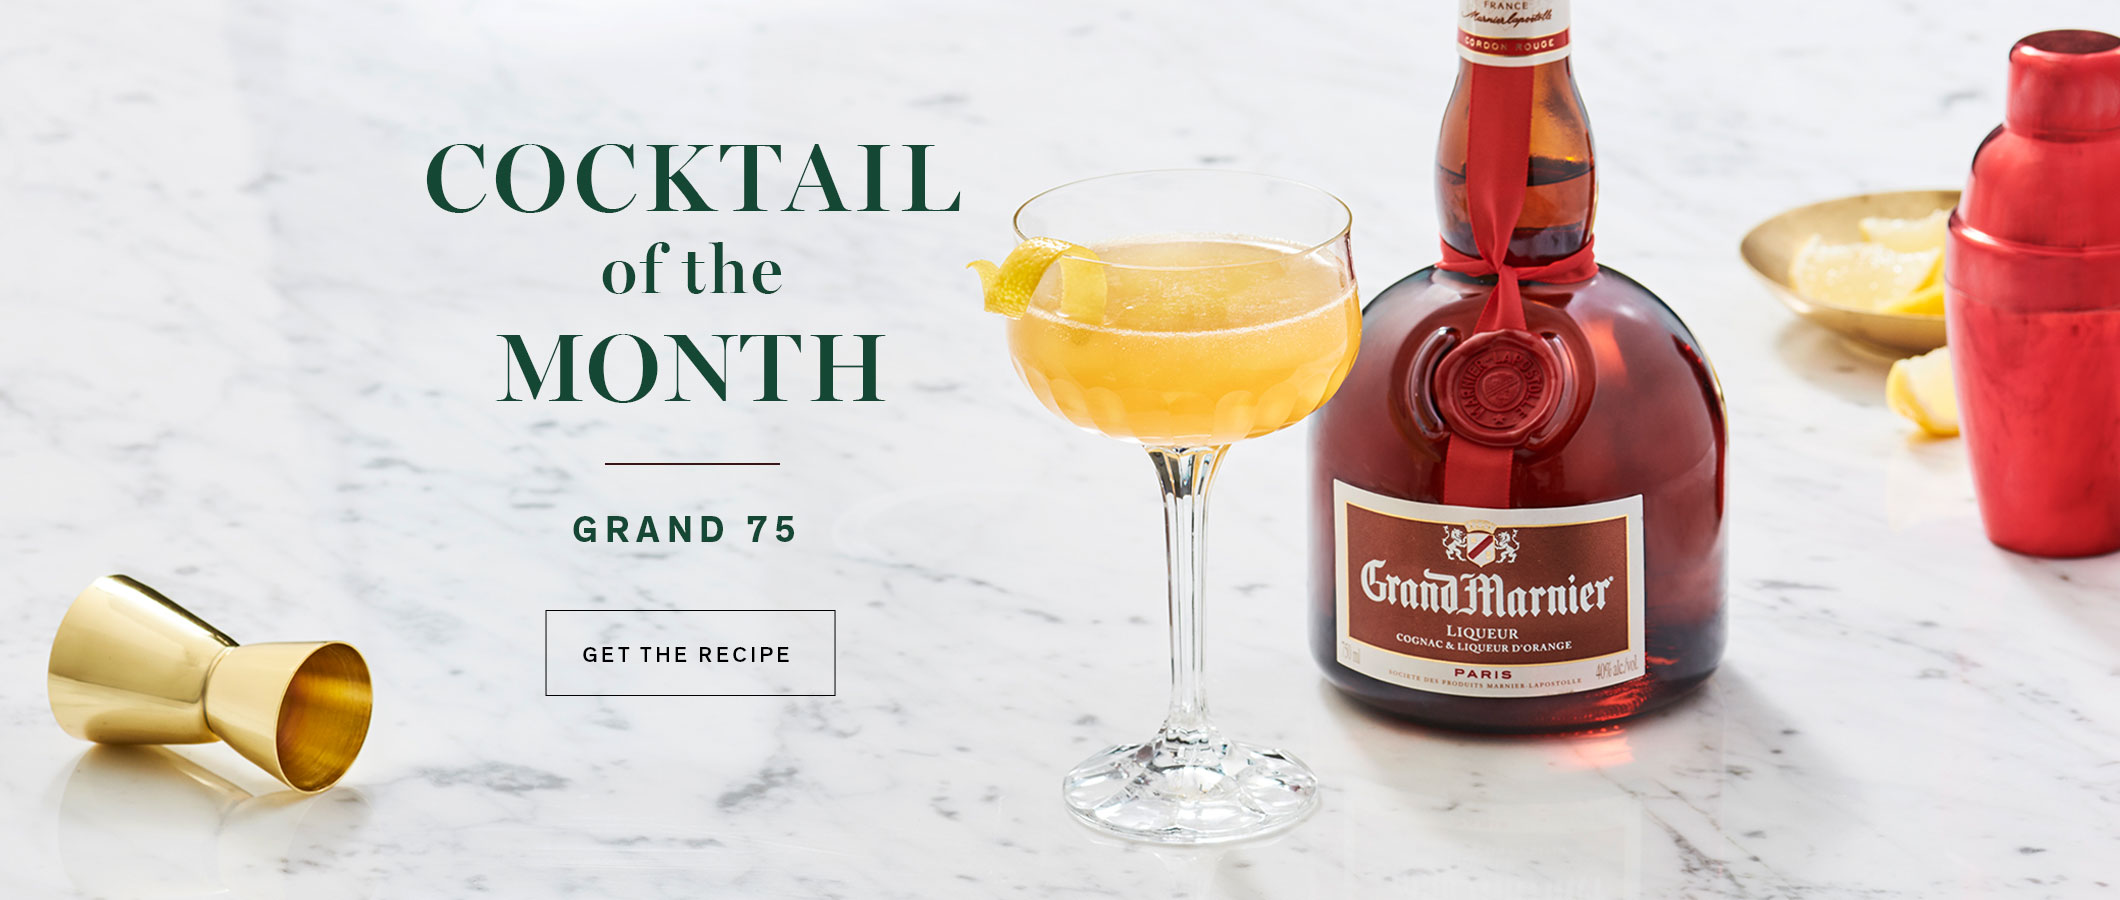 Cocktail of the Month  Grande 75. GET THE RECIPE